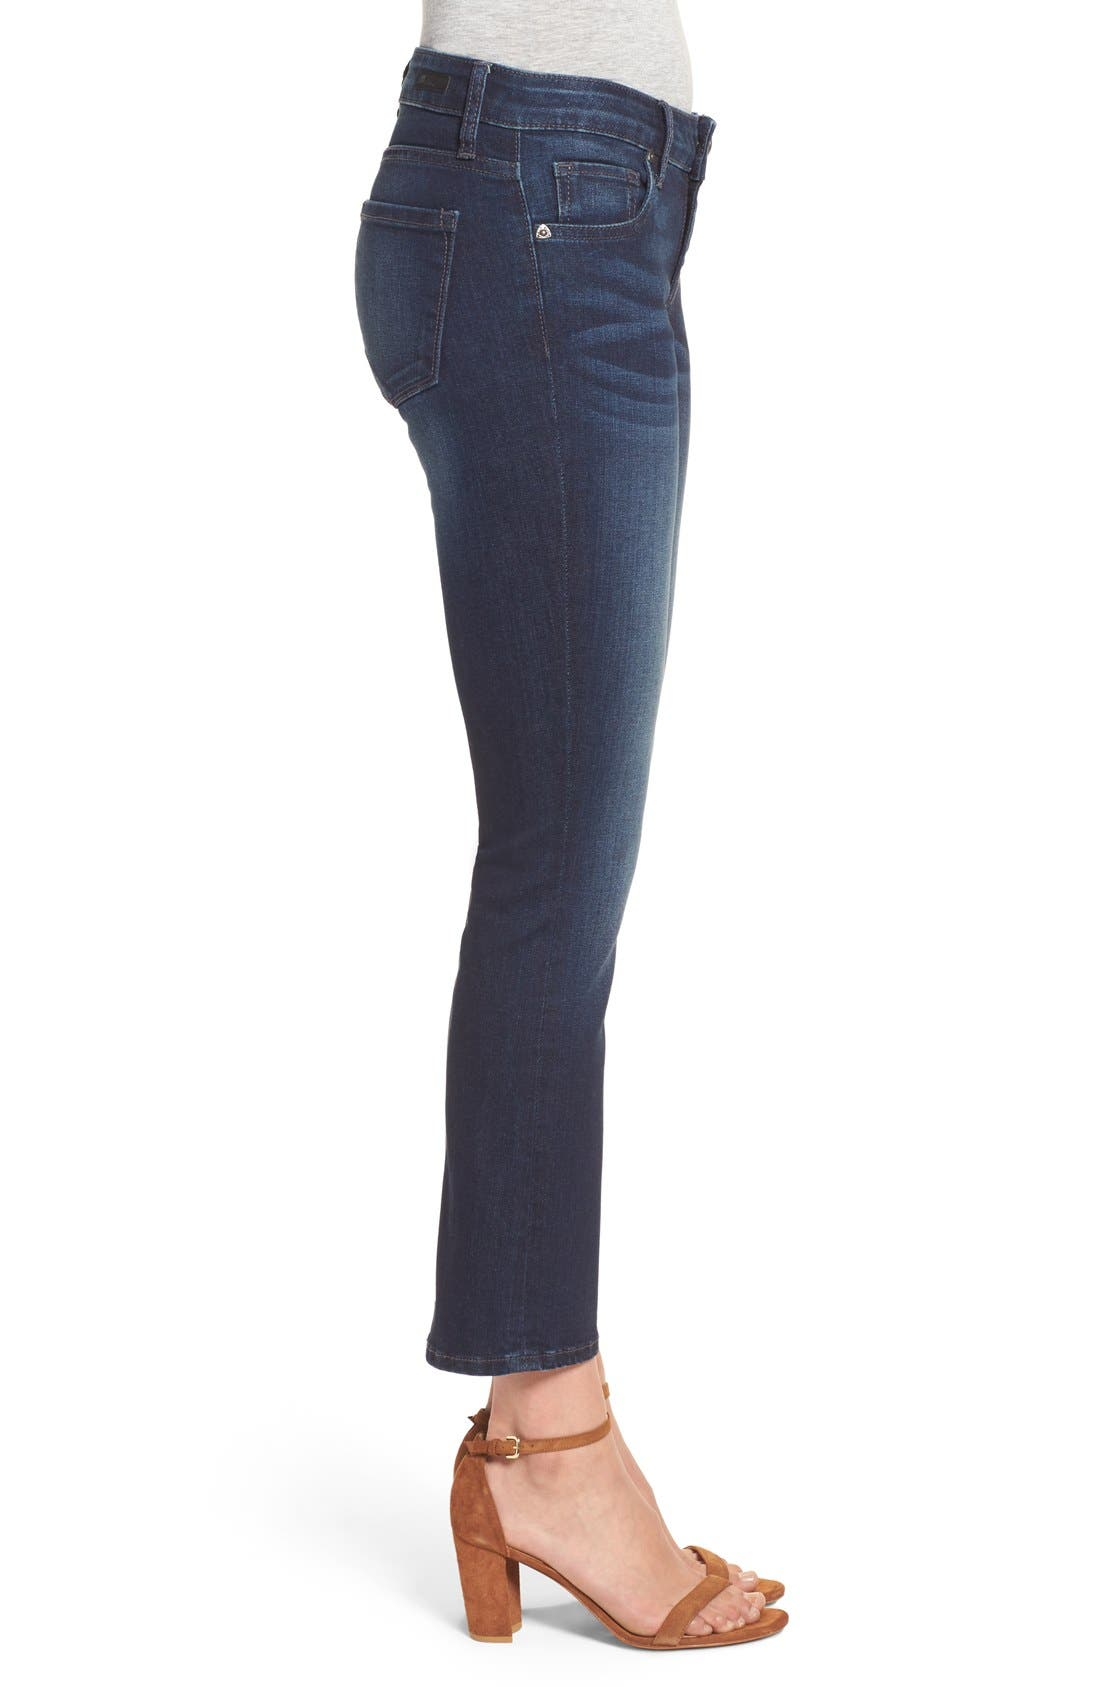 Alternate Image 3  - KUT from the Kloth 'Reese' Crop Flare Leg Jeans (Security)